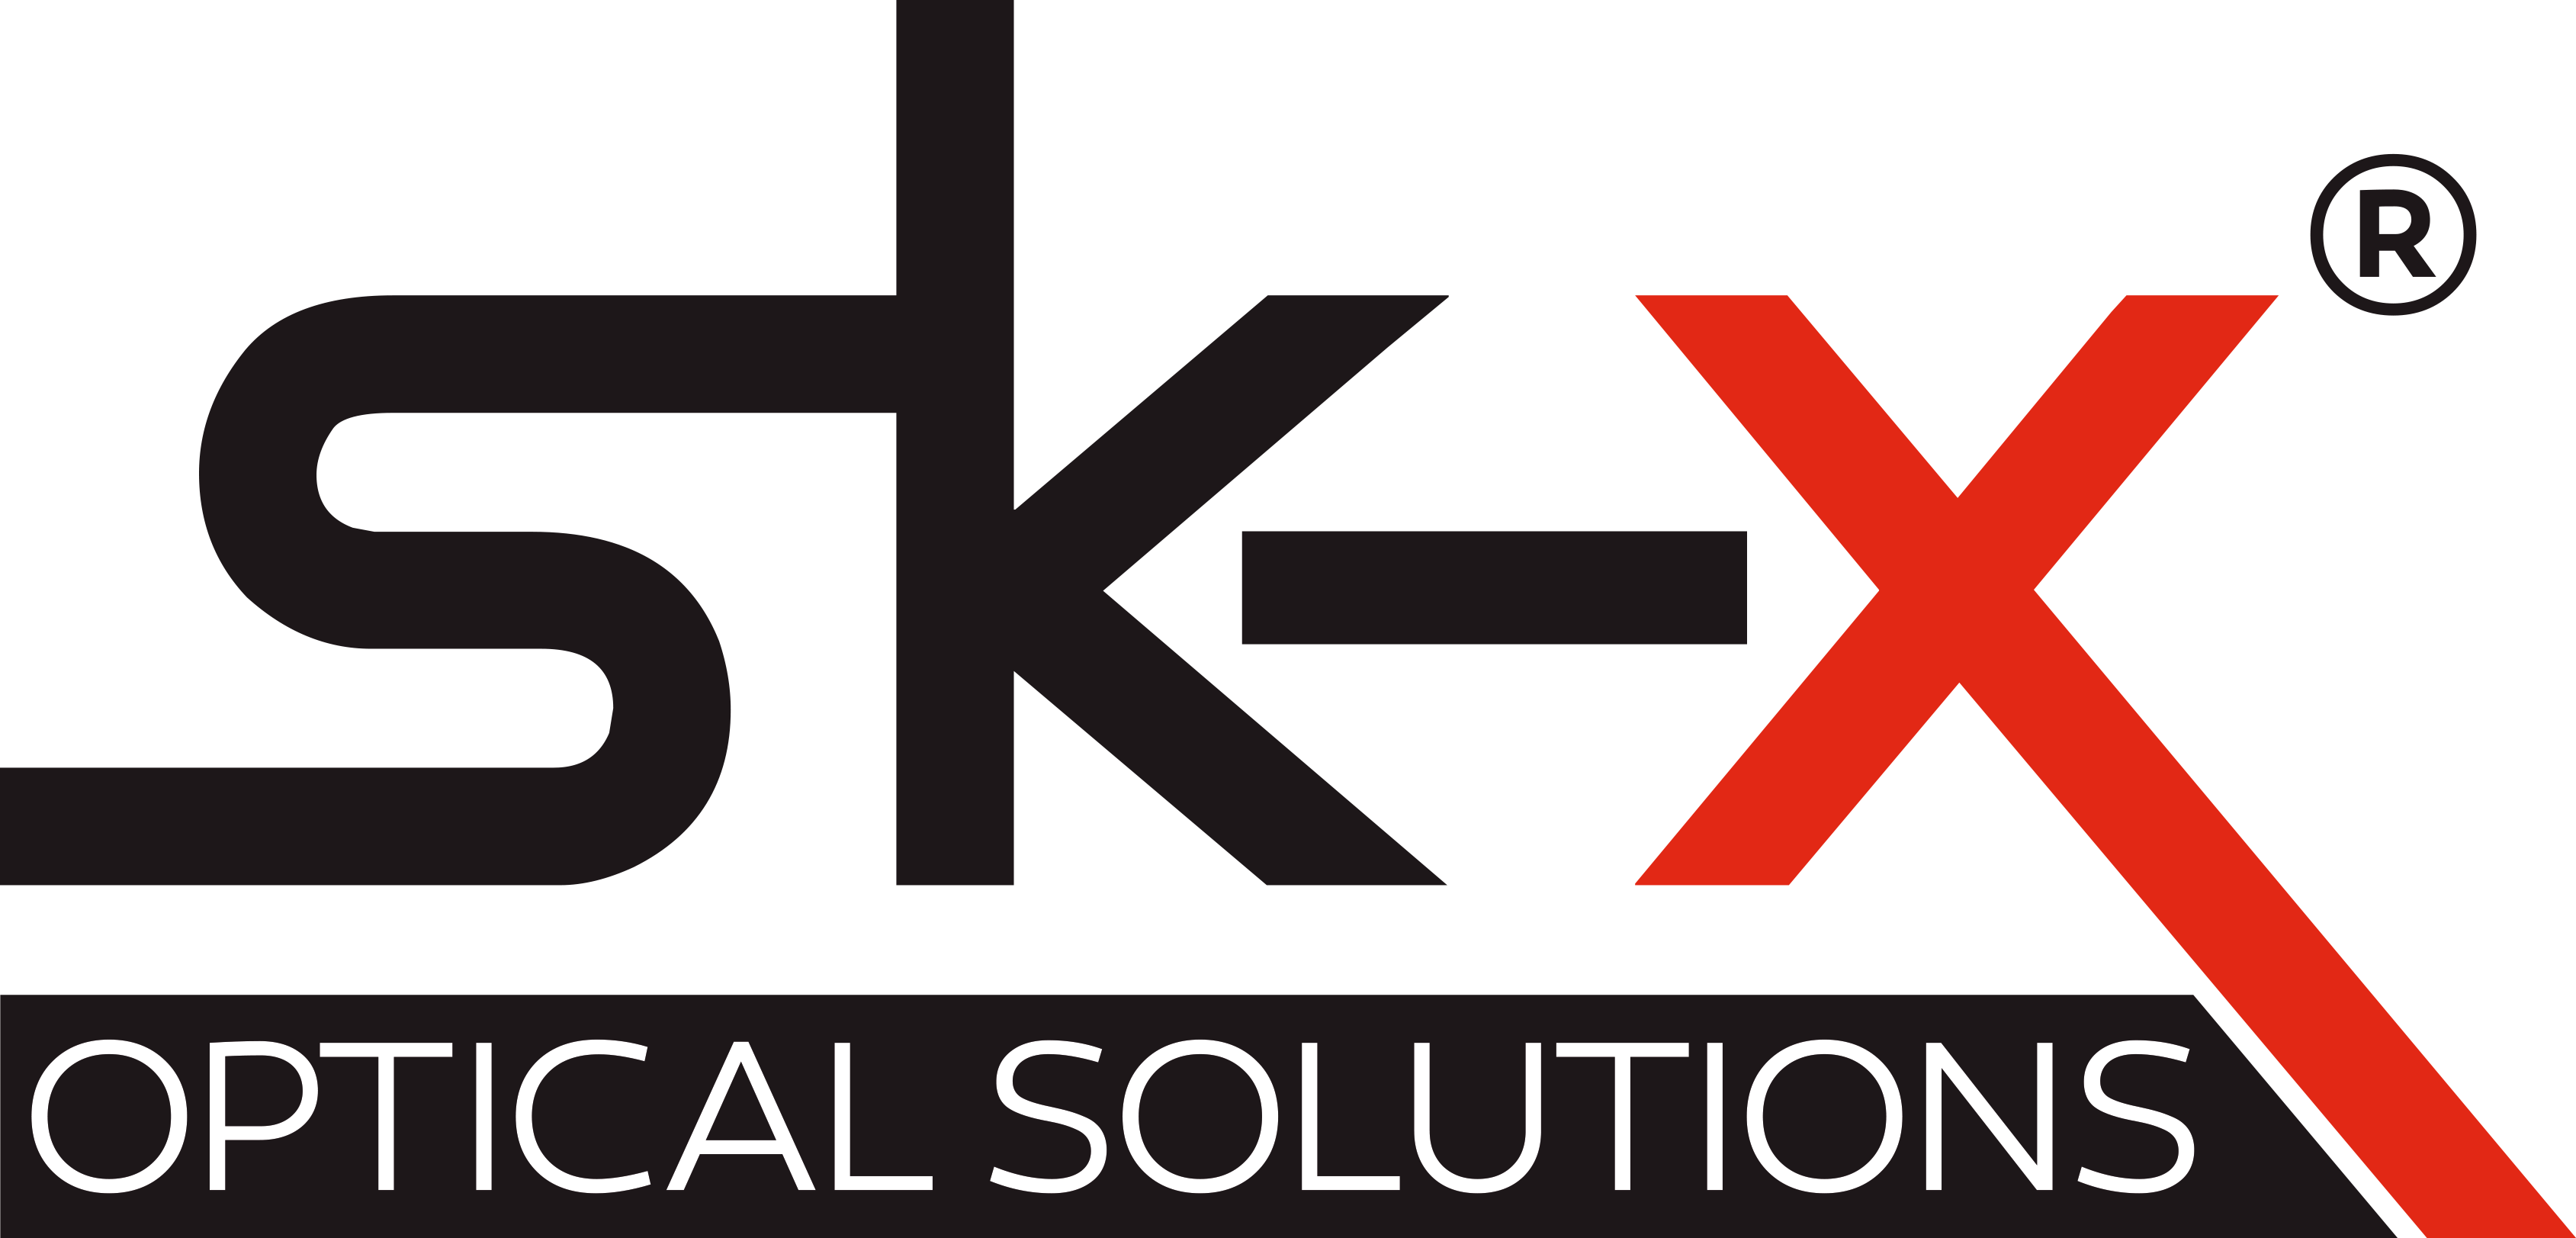 SK-X® optical solutions GmbH